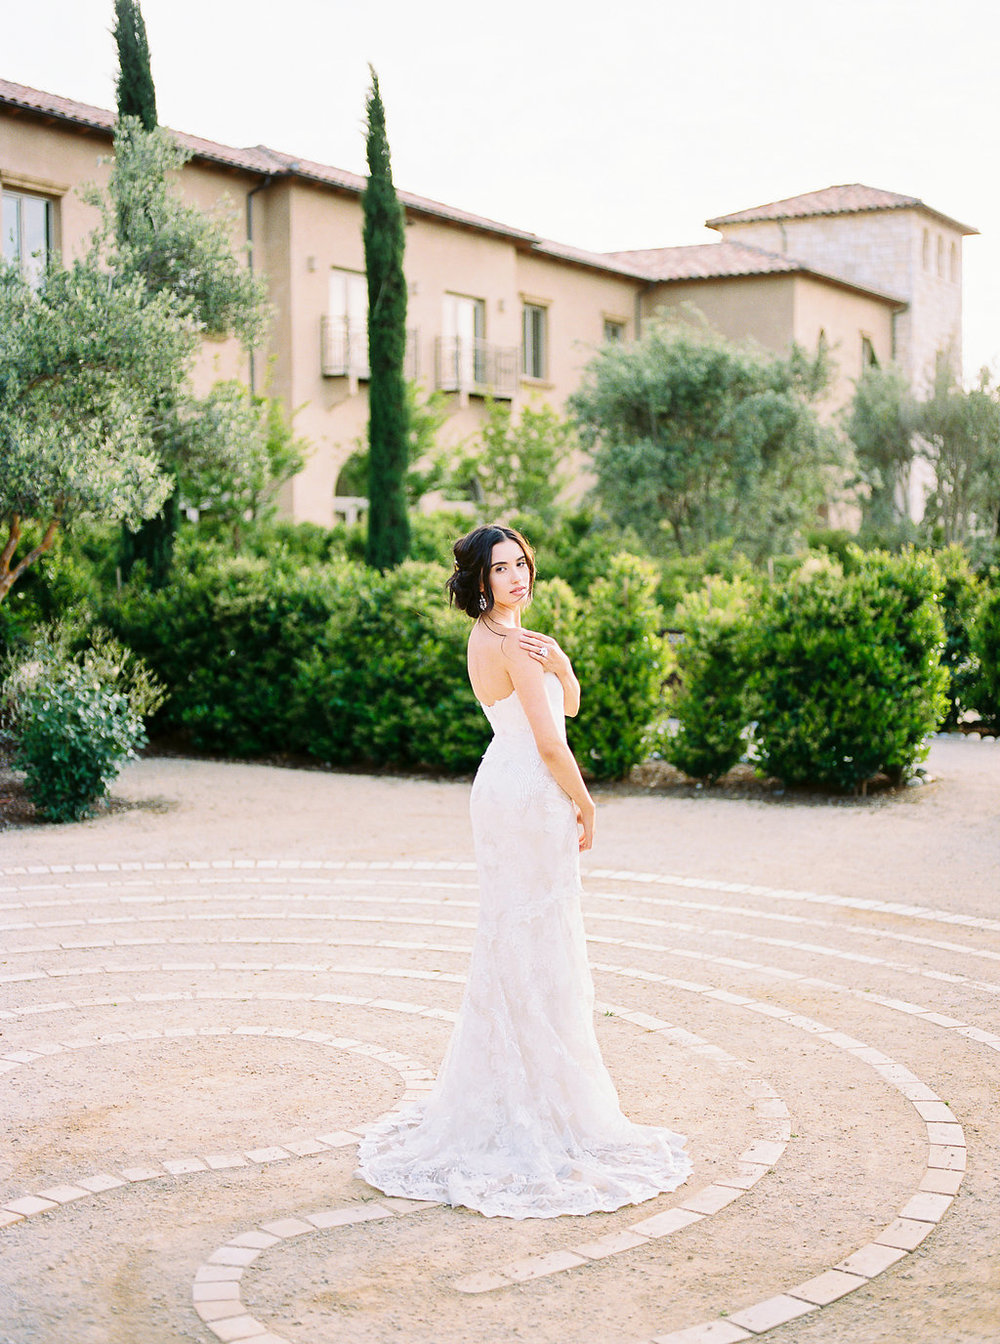 Paso Robles California - Allegretto Resort and Vineyards - Bridal Session - fine art film photographer Tanja Kibogo20.JPG